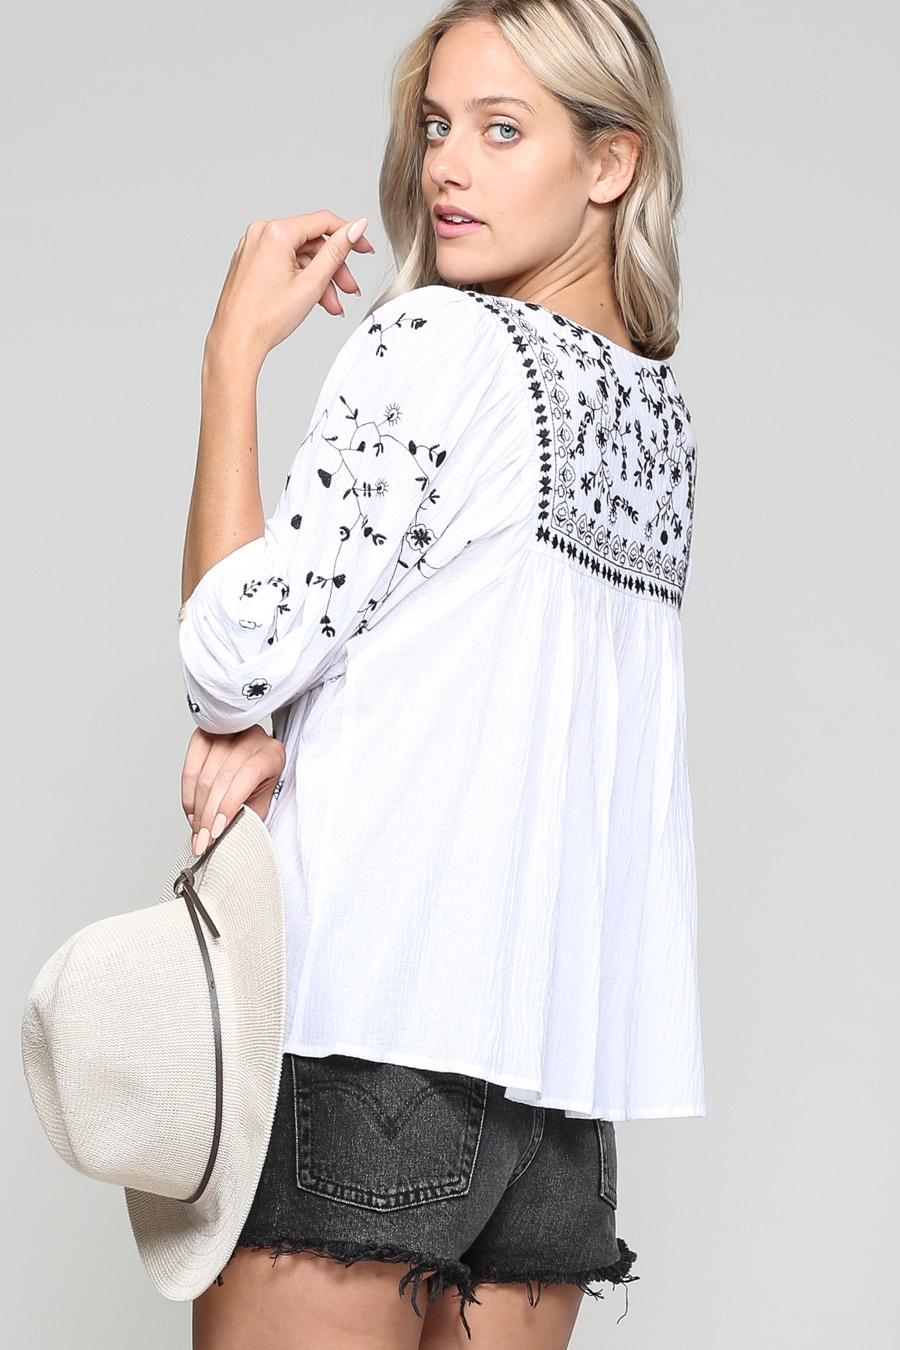 FLORAL EMBROIDERED PEASANT BLOUSE - orangeshine.com